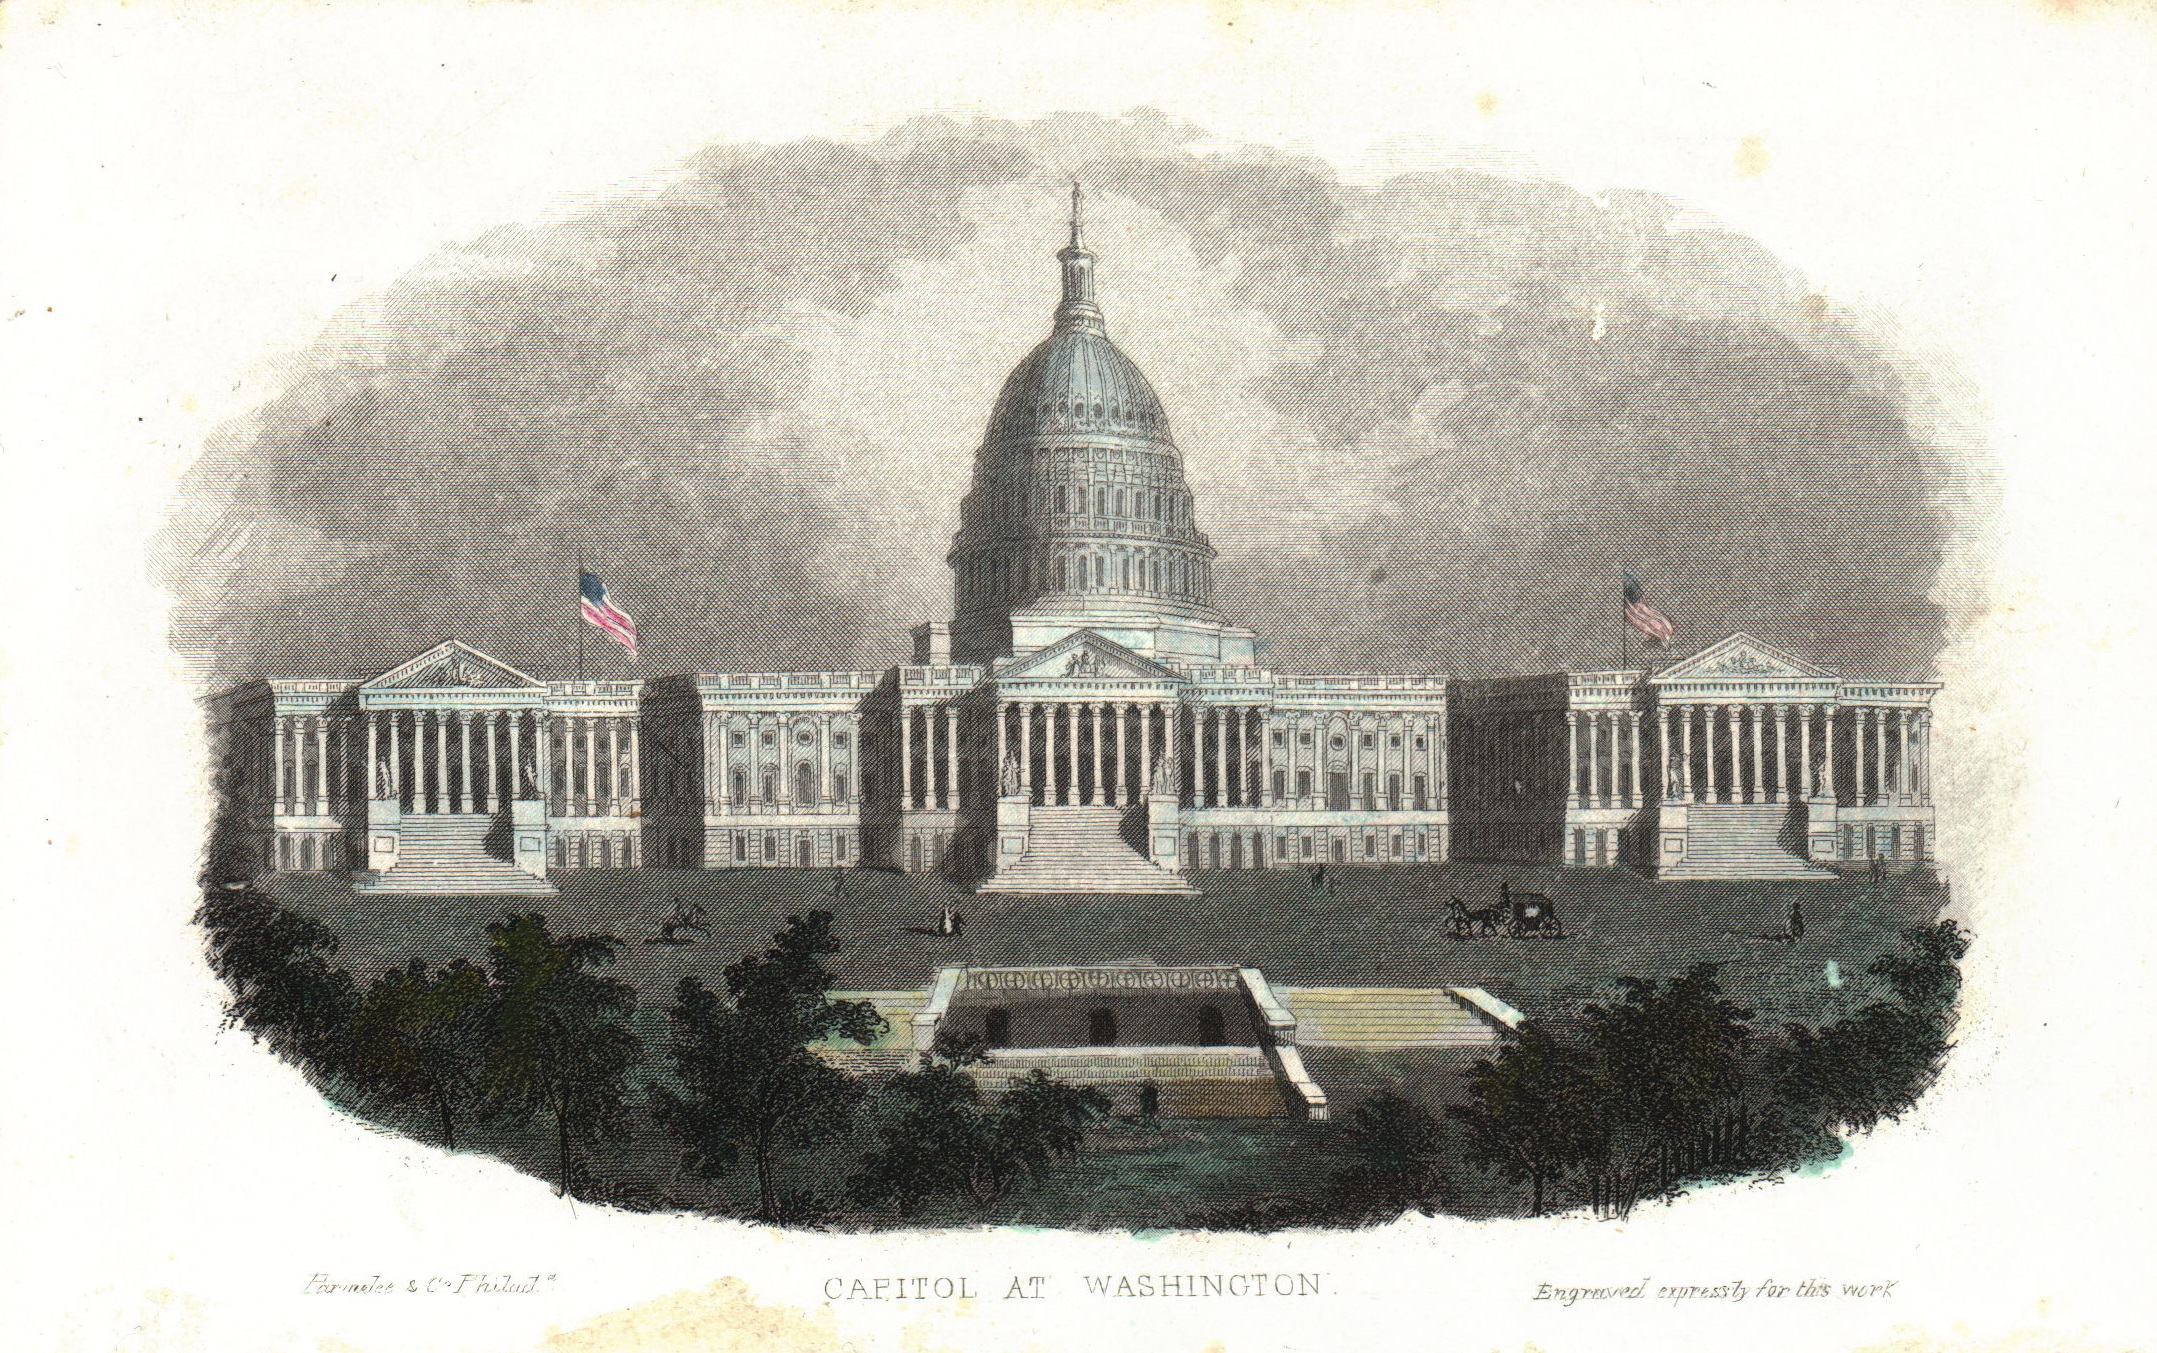 Capitol at Washington